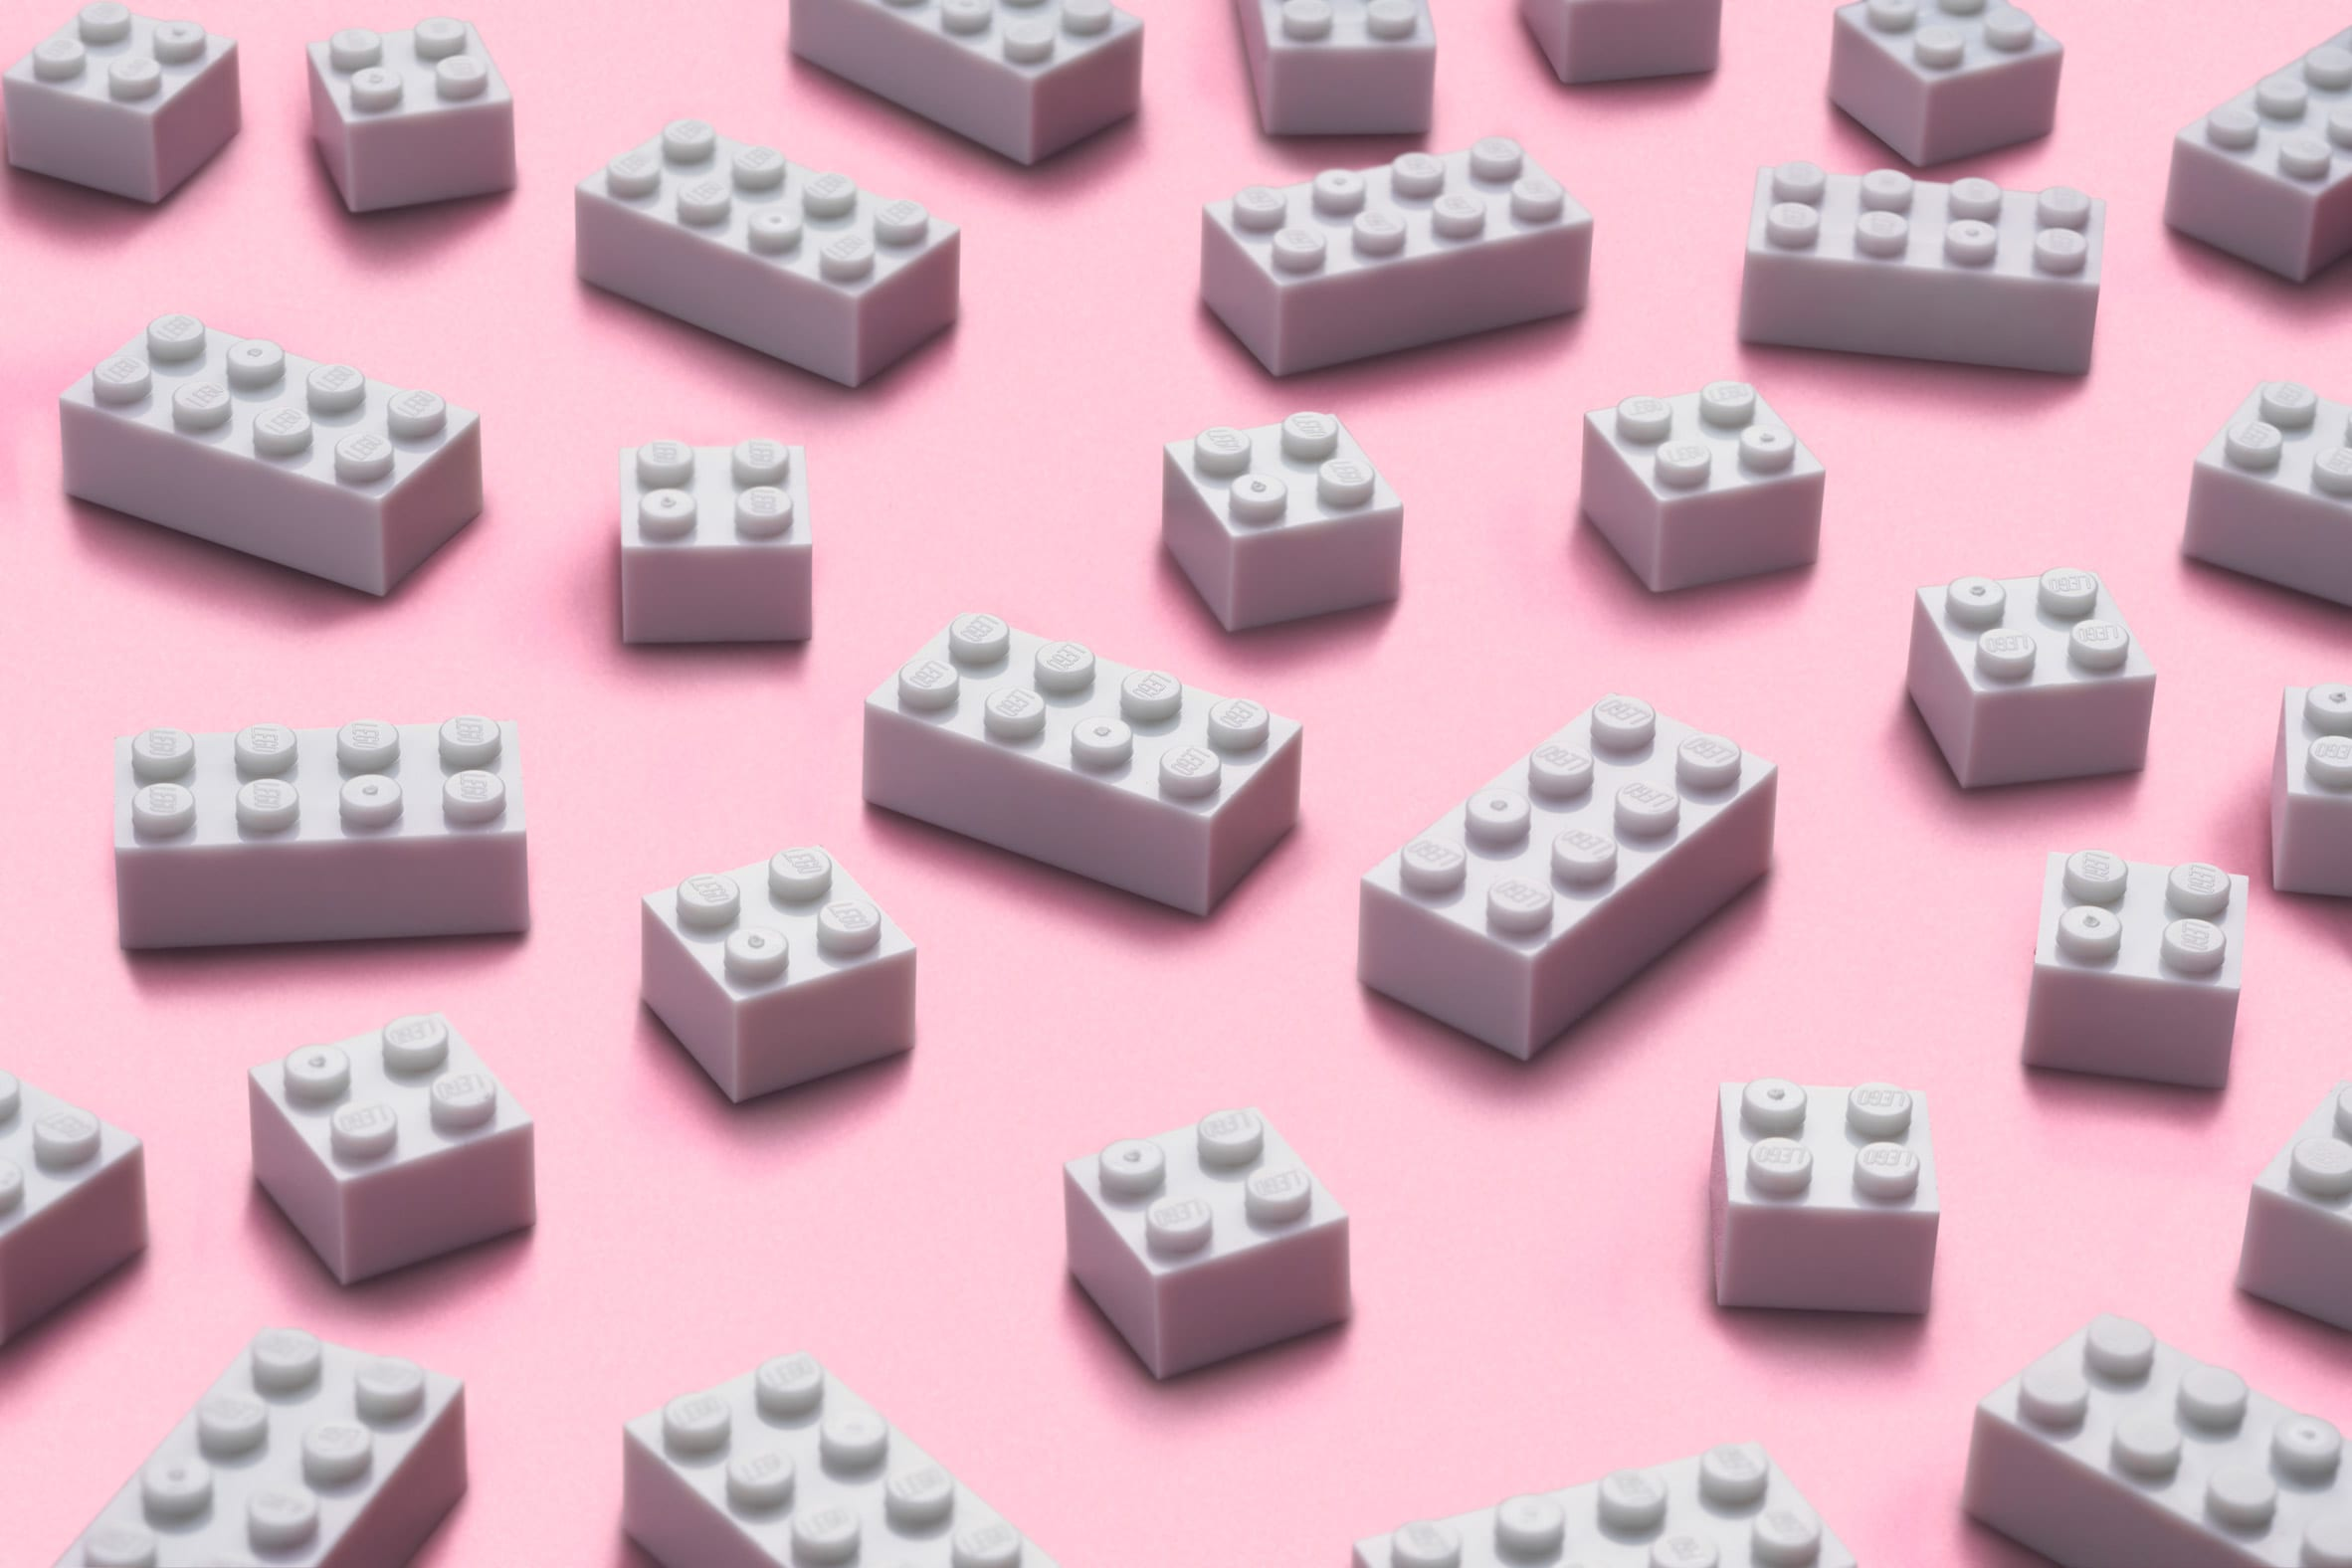 White 2x4 and 2x2 Lego bricks on a pink background